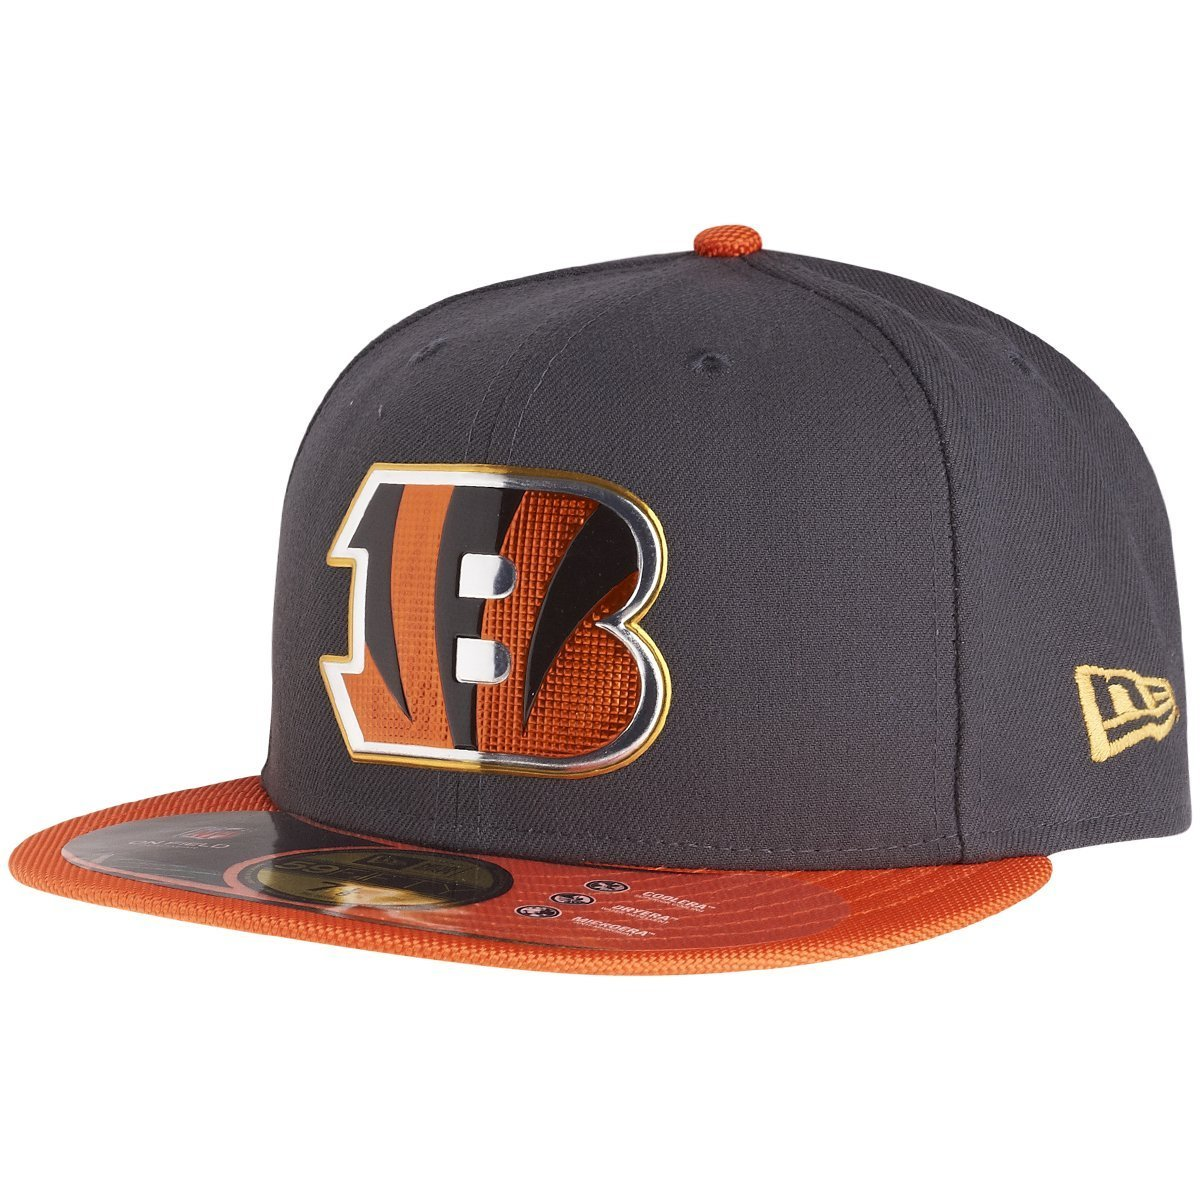 9a98db8883fd93 Amazon.com : New Era NFL Hat Cincinnati Bengals on Field Gold Collection  Football Black with Gold Cap (7 3/4) : Sports & Outdoors